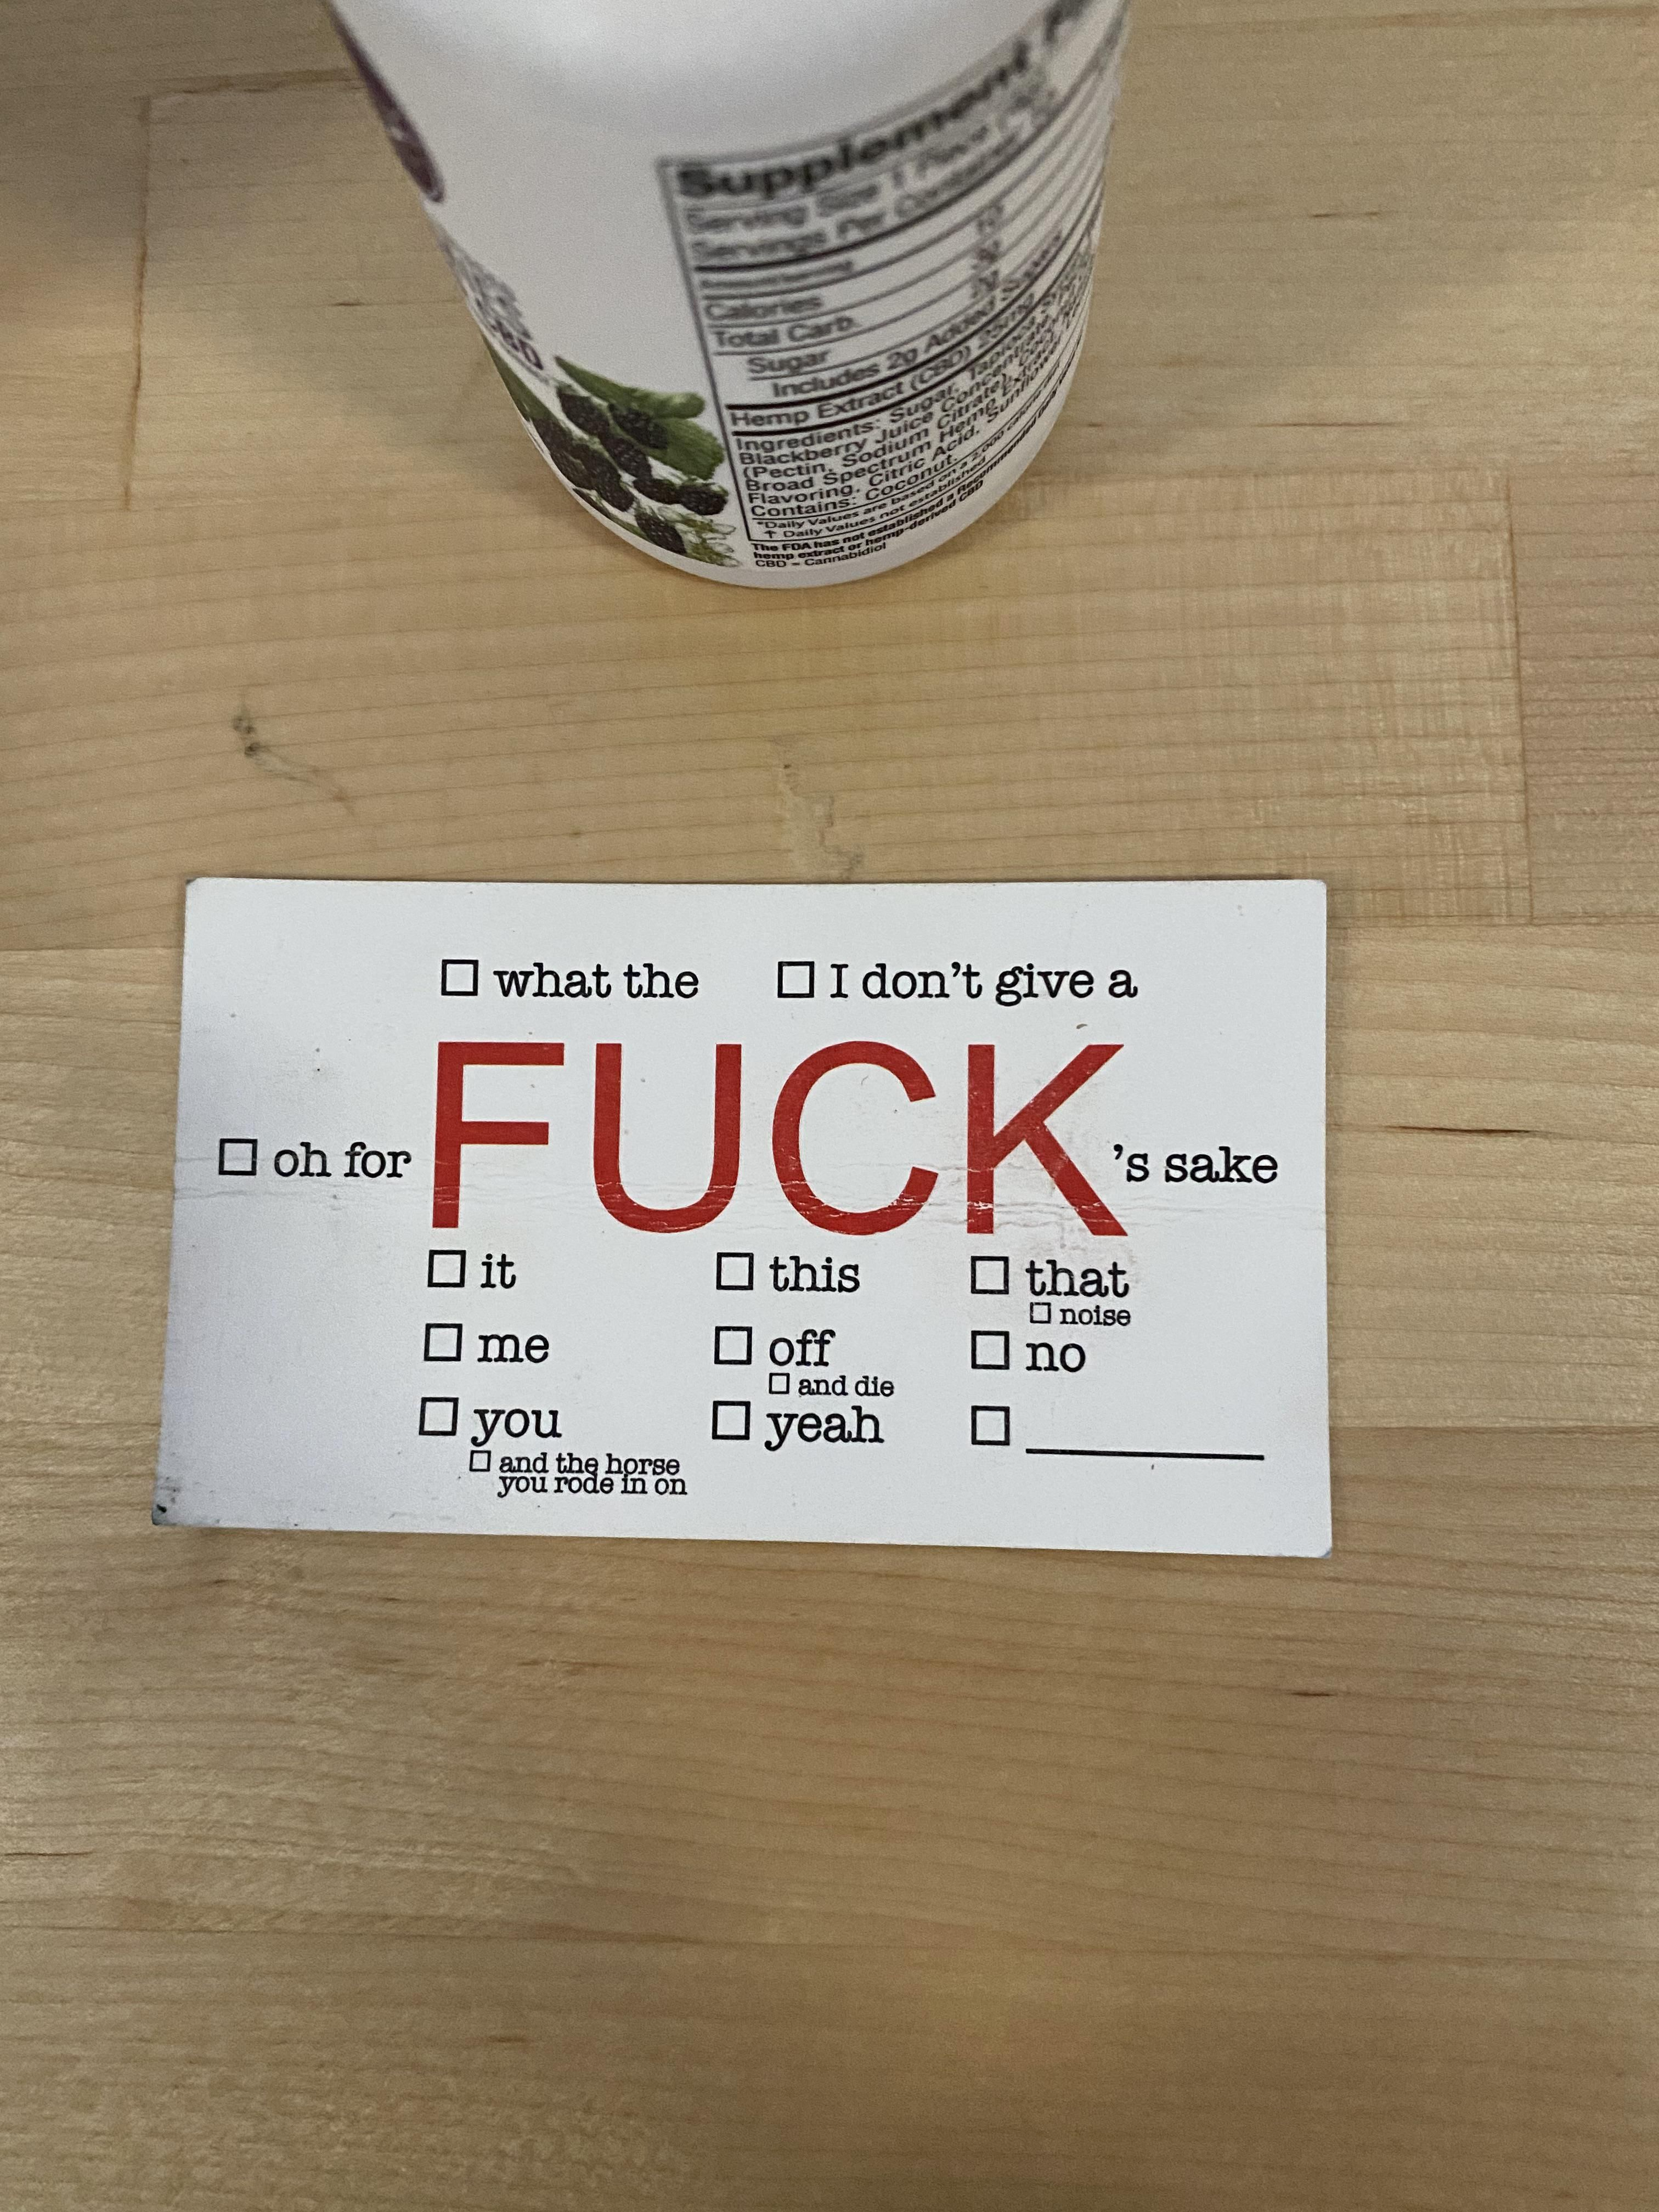 Found on my break room table at work